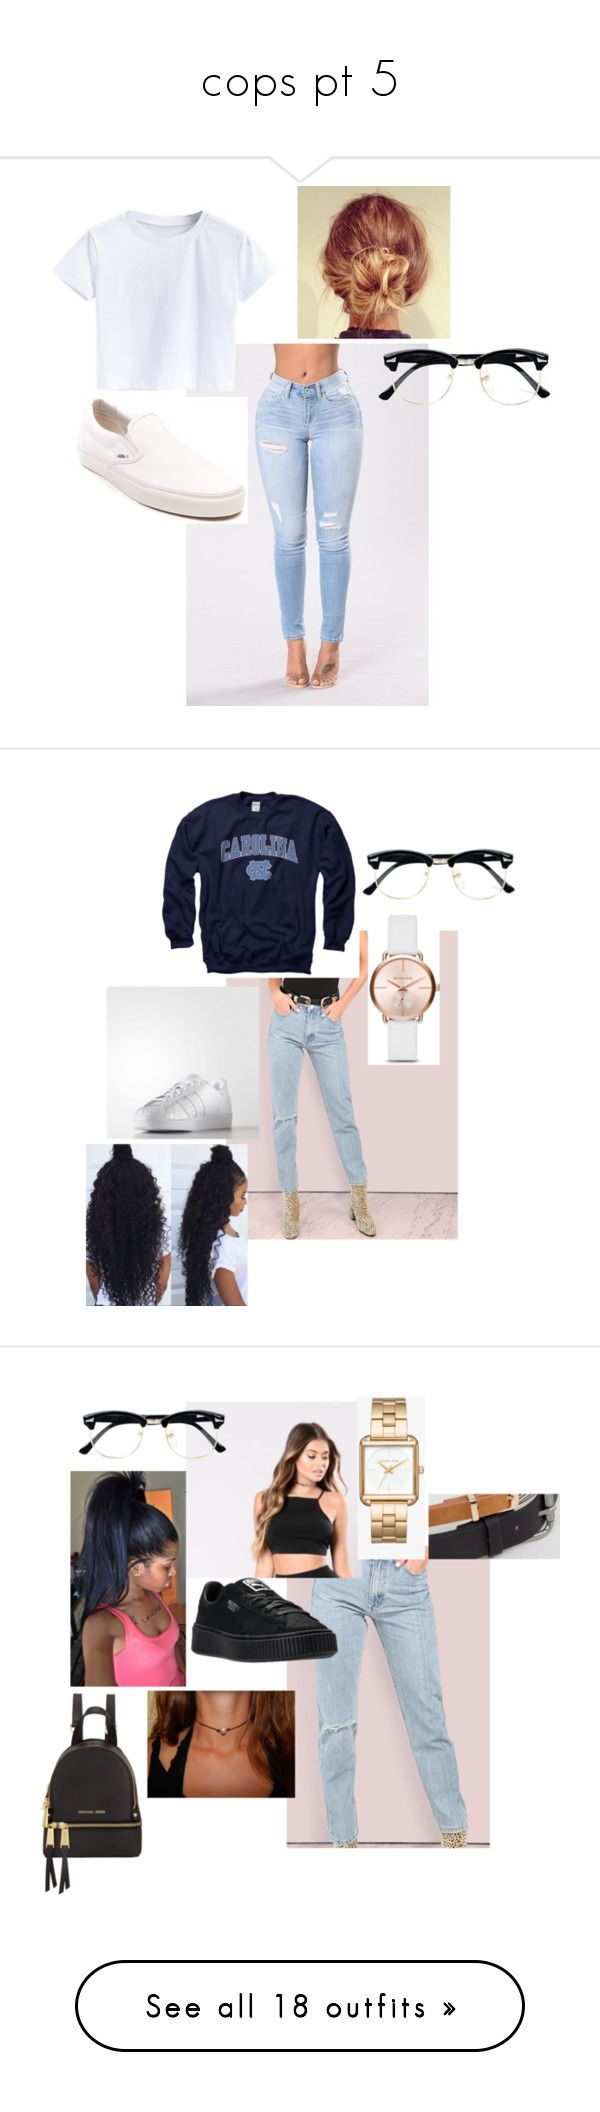 """""""cops pt 5"""" by olivyathompson on Polyvore featuring Vans, Topman, Gameday Boots, Michael Kors, adidas, ASOS, MICHAEL Michael Kors, NIKE, ODD FUTURE and WithChic"""